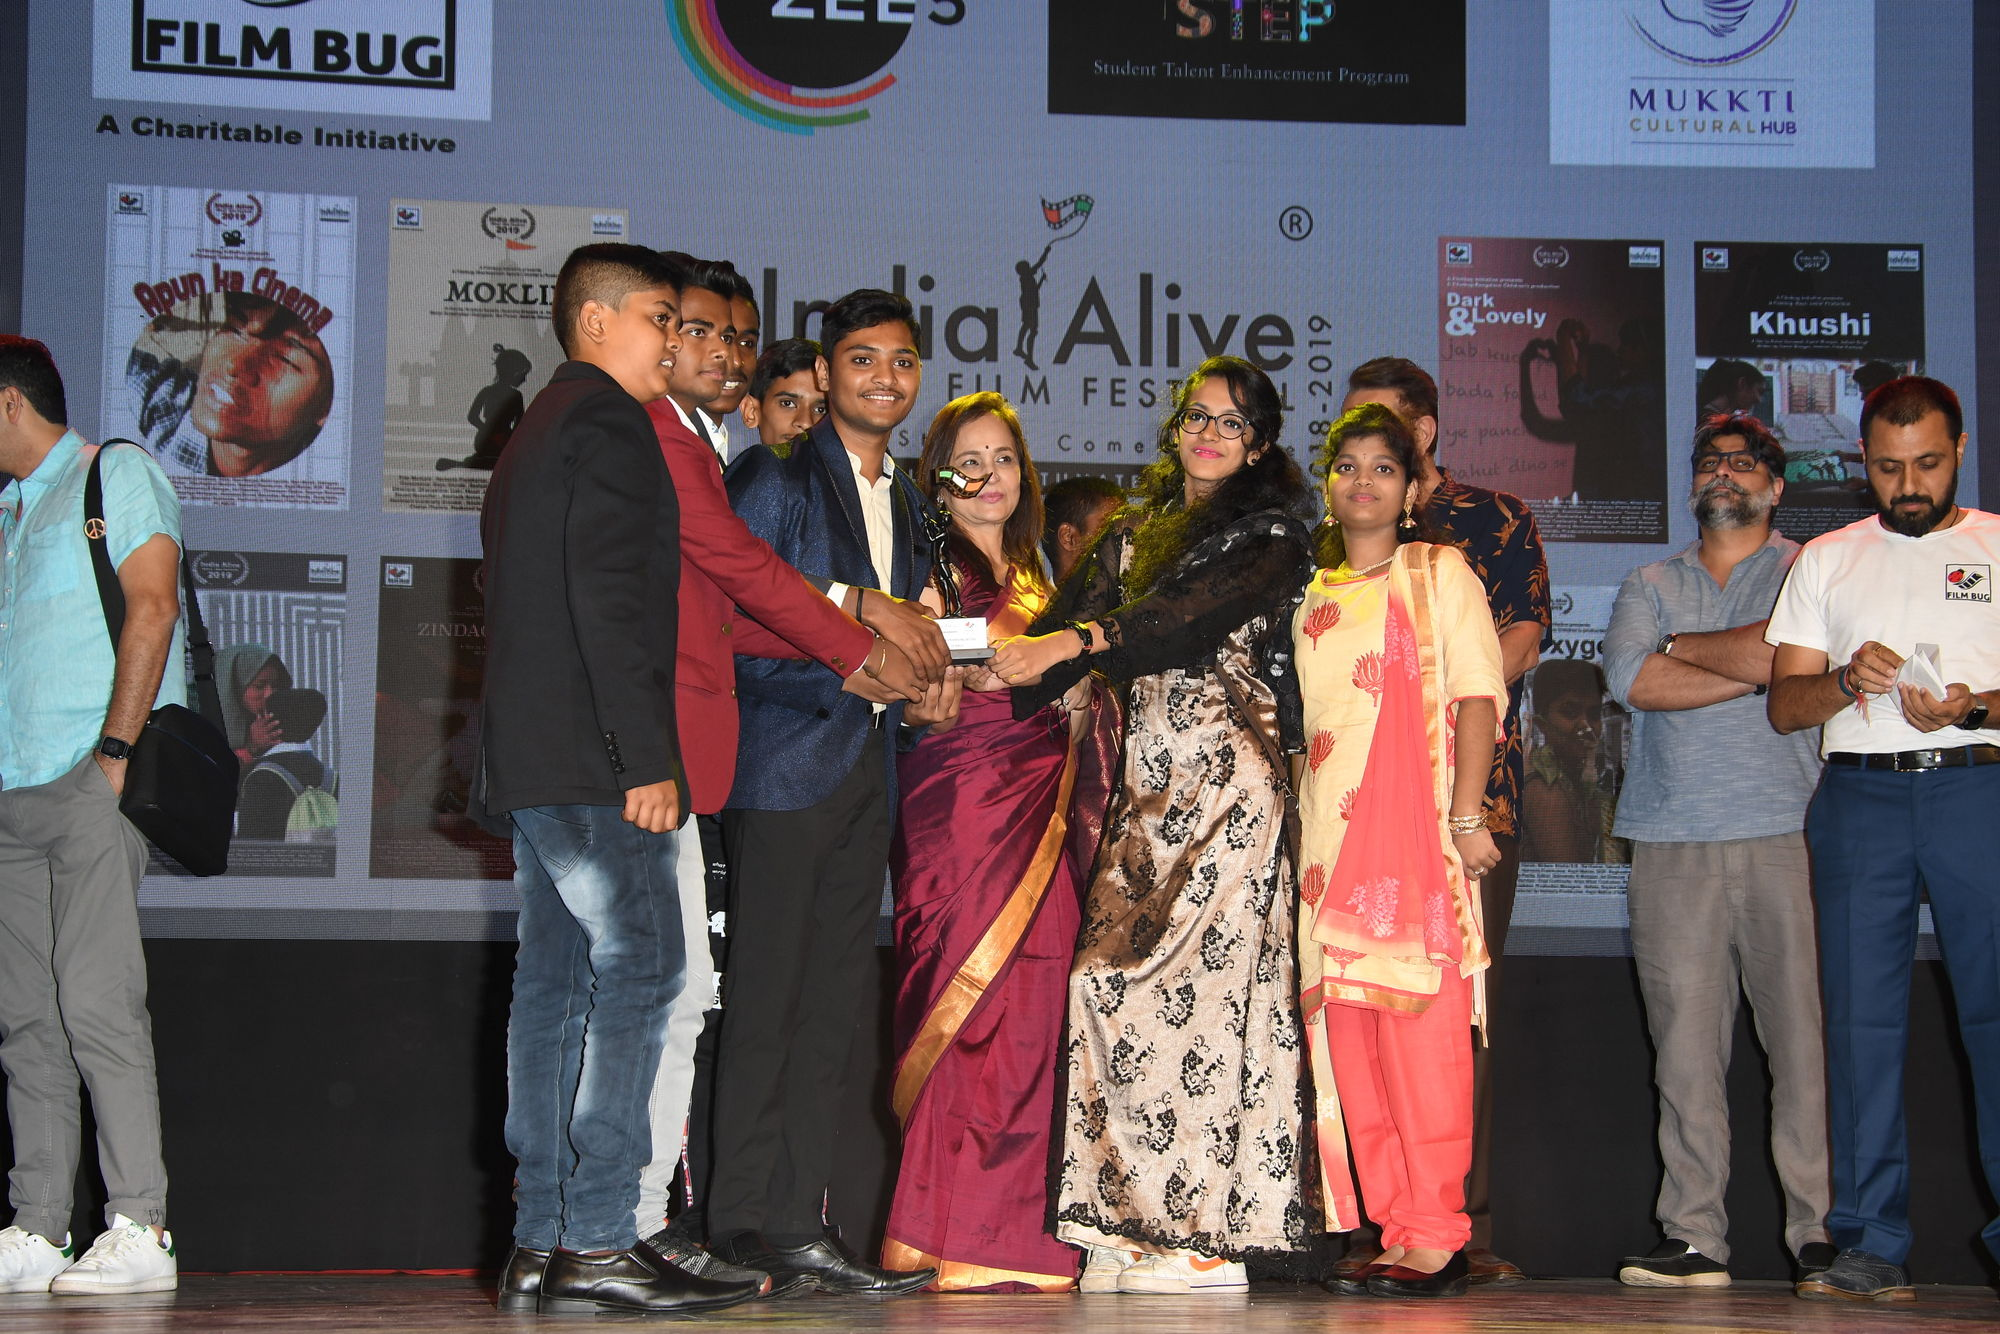 INDIA ALIVE SHORT FILM FESTIVAL